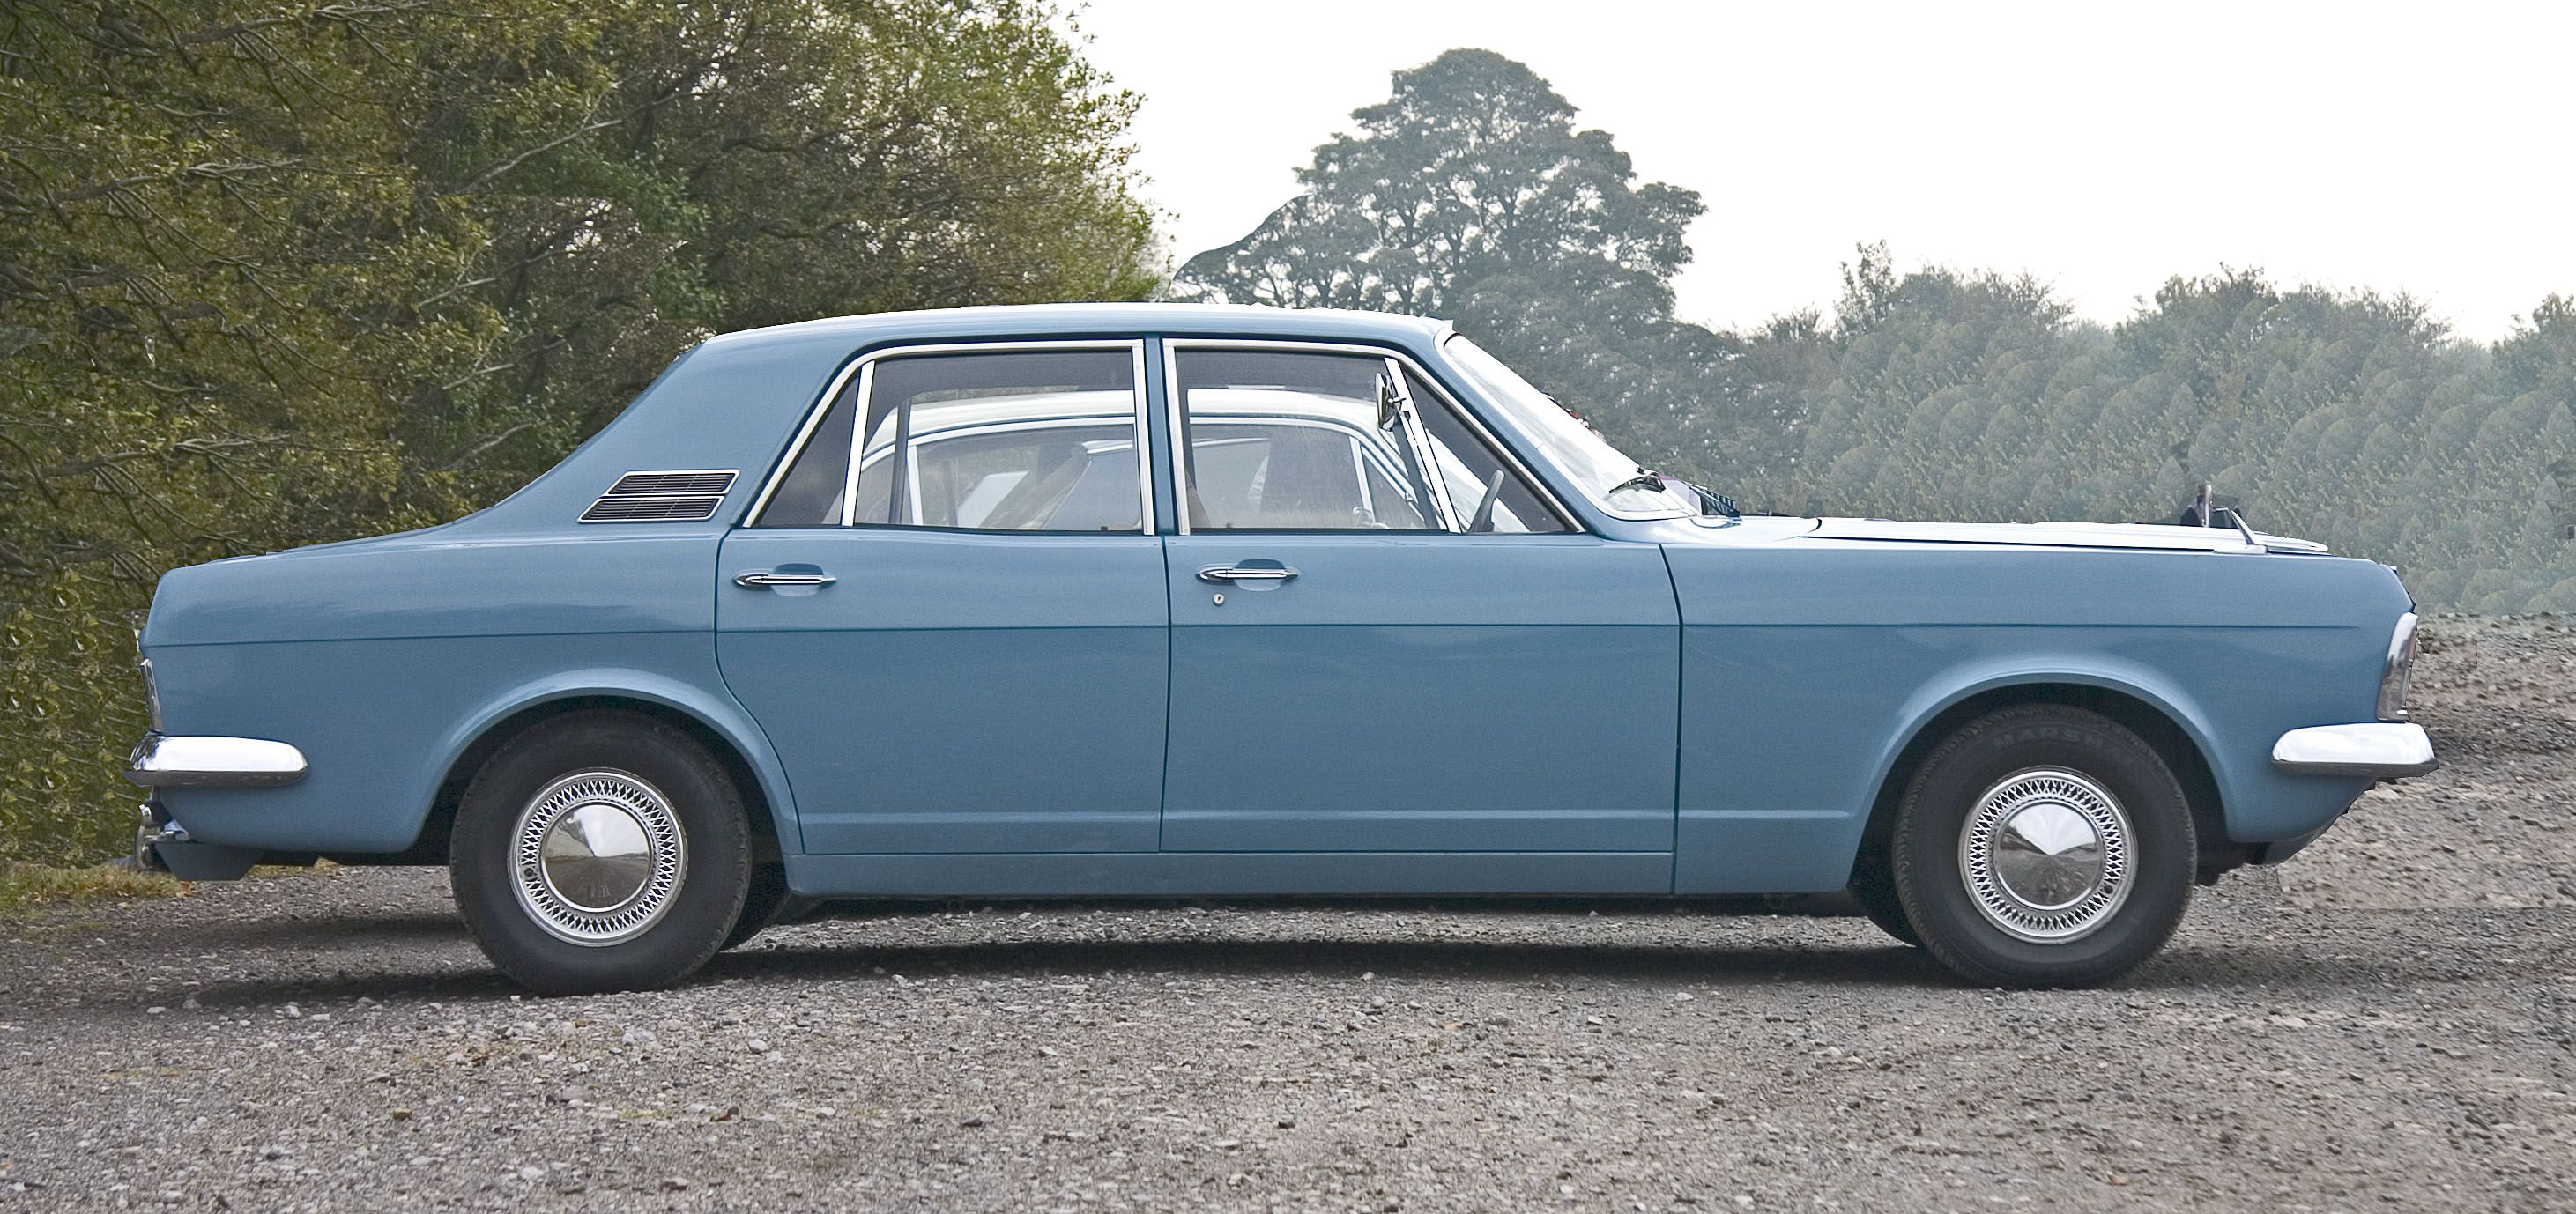 Ford Zephyr 4 Mark Iv The Short Tailed Long Nosed Profile